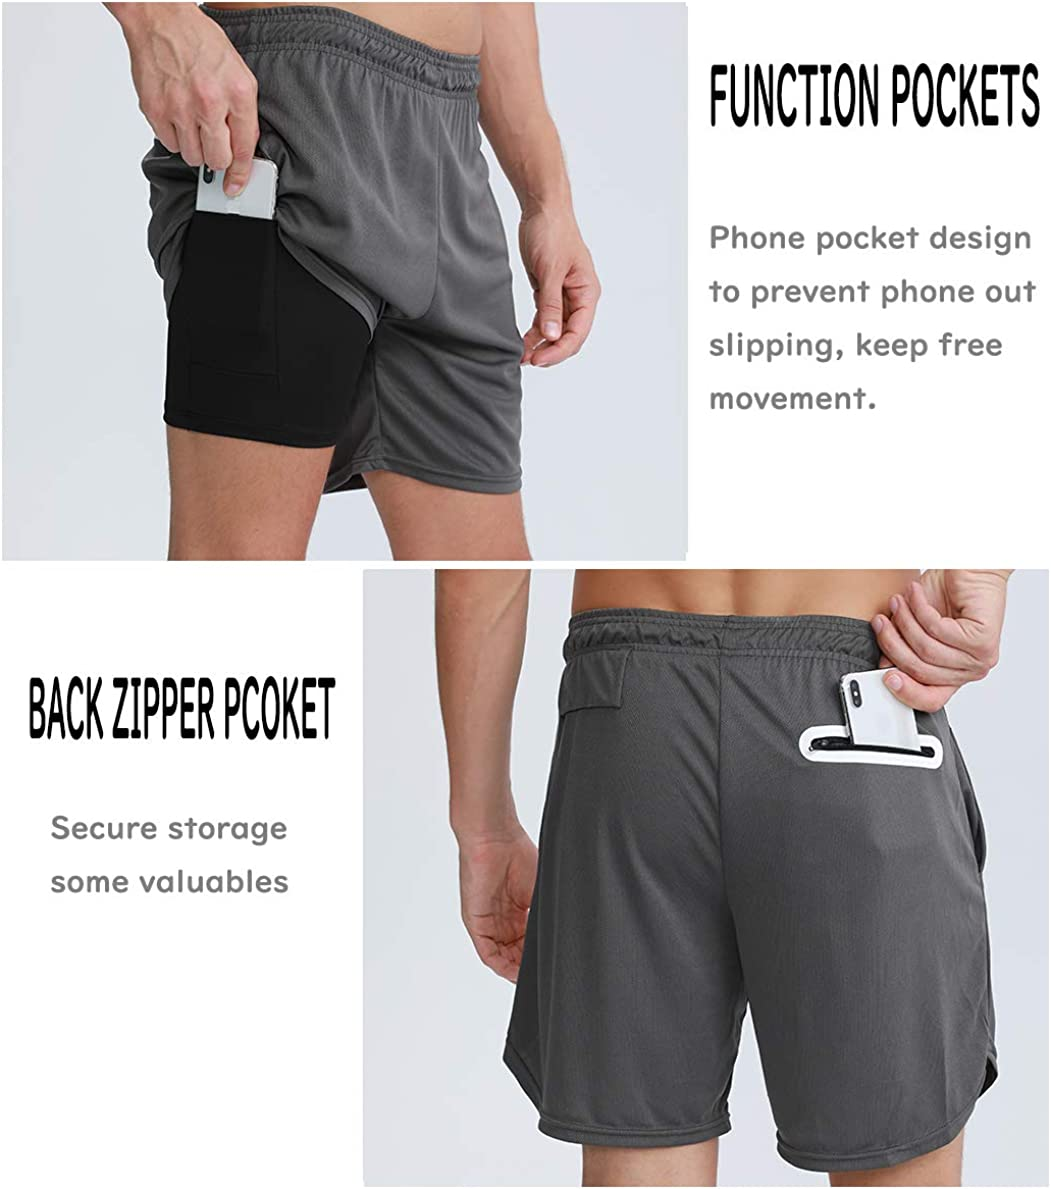 Inkpoo Mens Running Gym 2 in 1 Sports Quick Drying Breathable Shorts Outdoor Training 7 Shorts with Phone Pocket